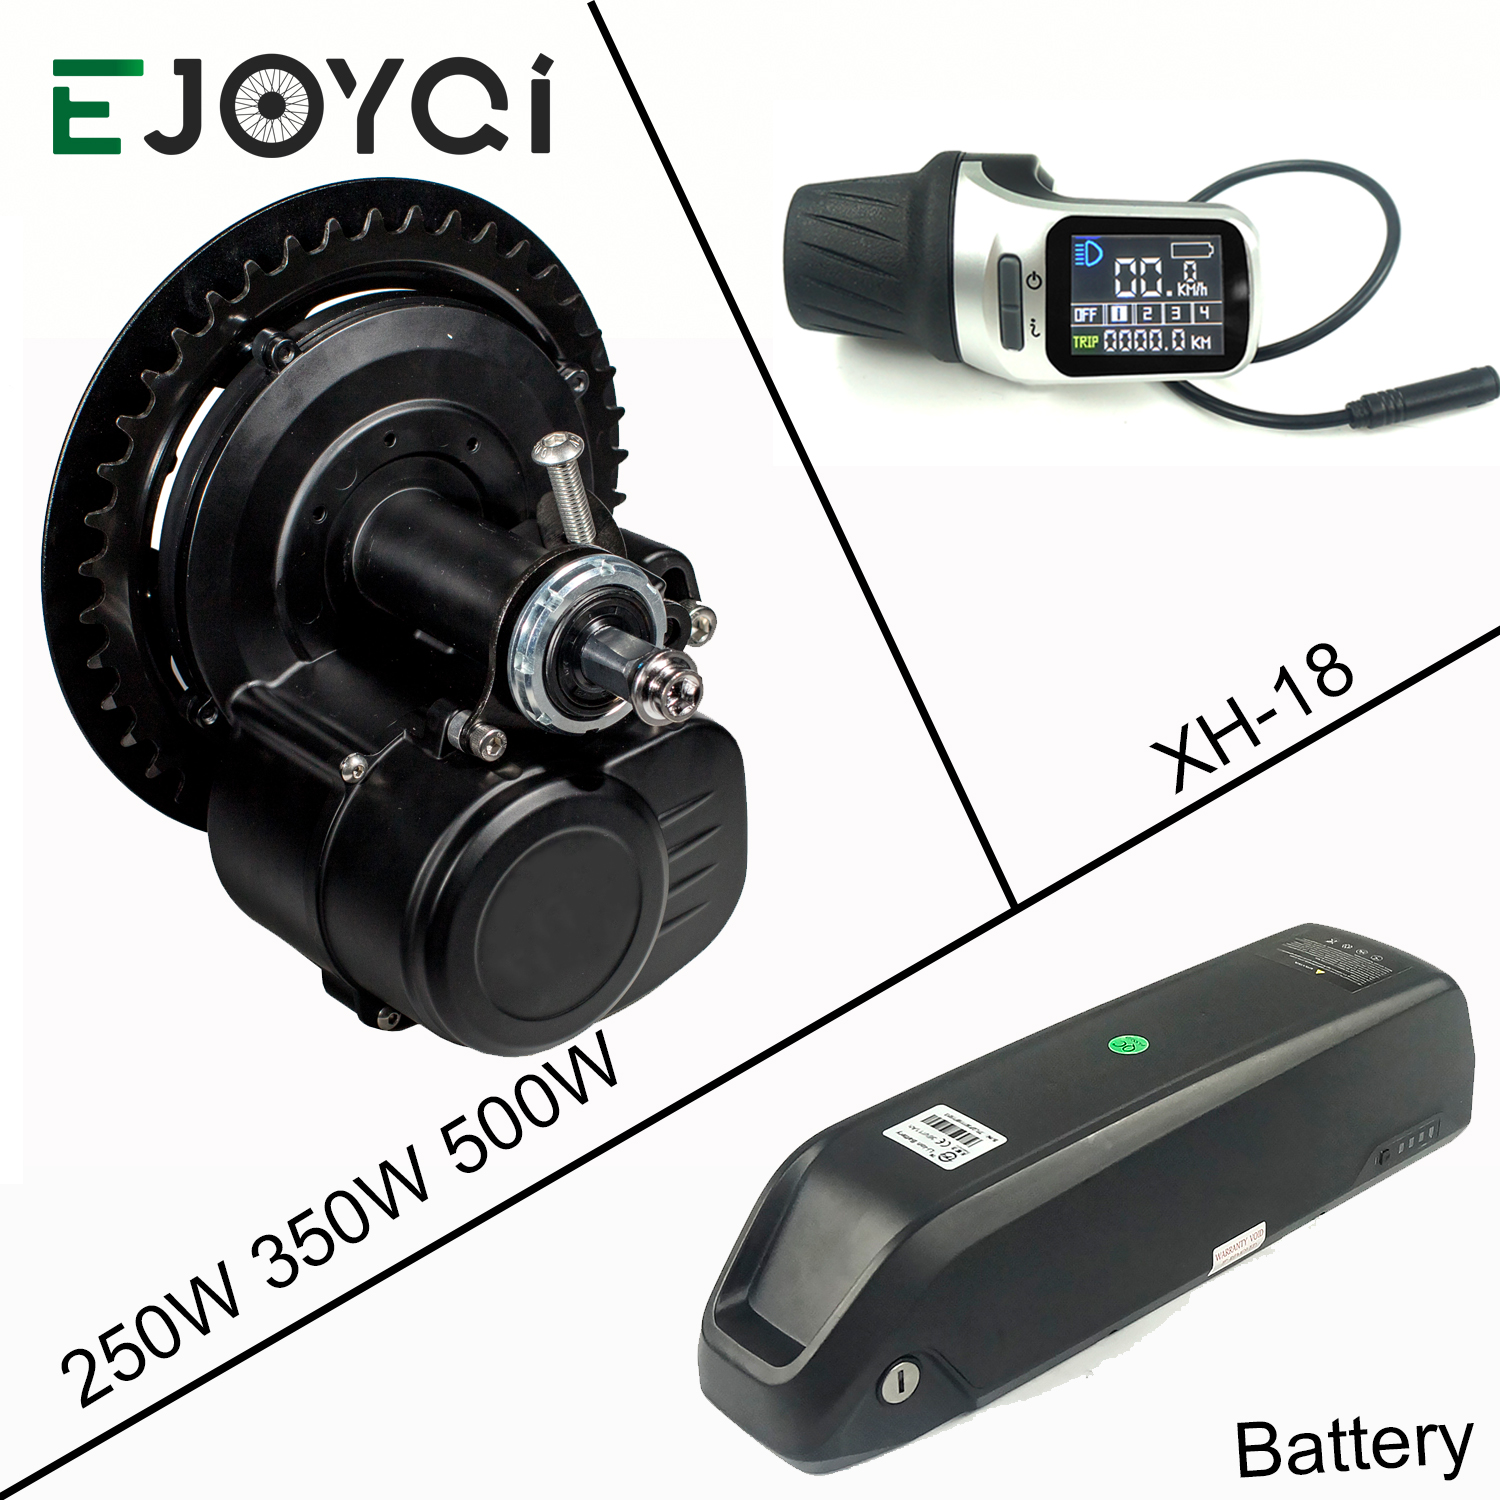 EJOYQI Ebike Kit With Battery With 36V 250W 350W 500W 48V 500W TSDZ2 Midmotor With XH18 LCD Display